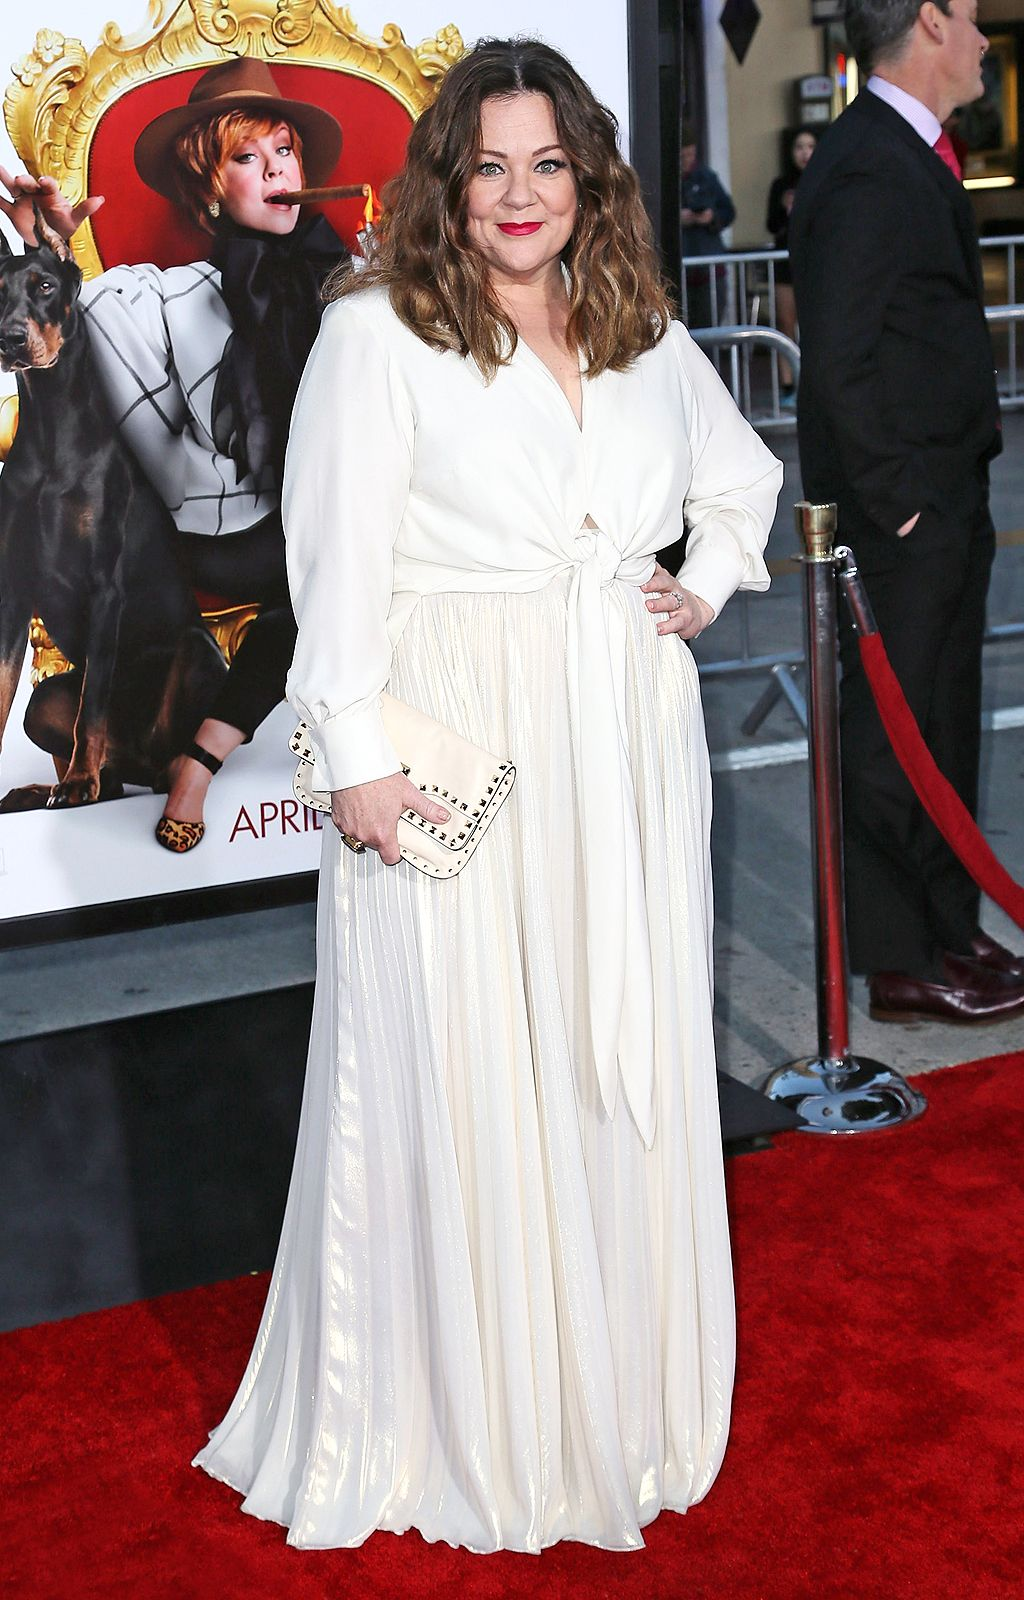 380415a6d36e4 MELISSA MCCARTHY wears a white long-sleeve blouse tied at the waist with a  pleated maxi skirt and